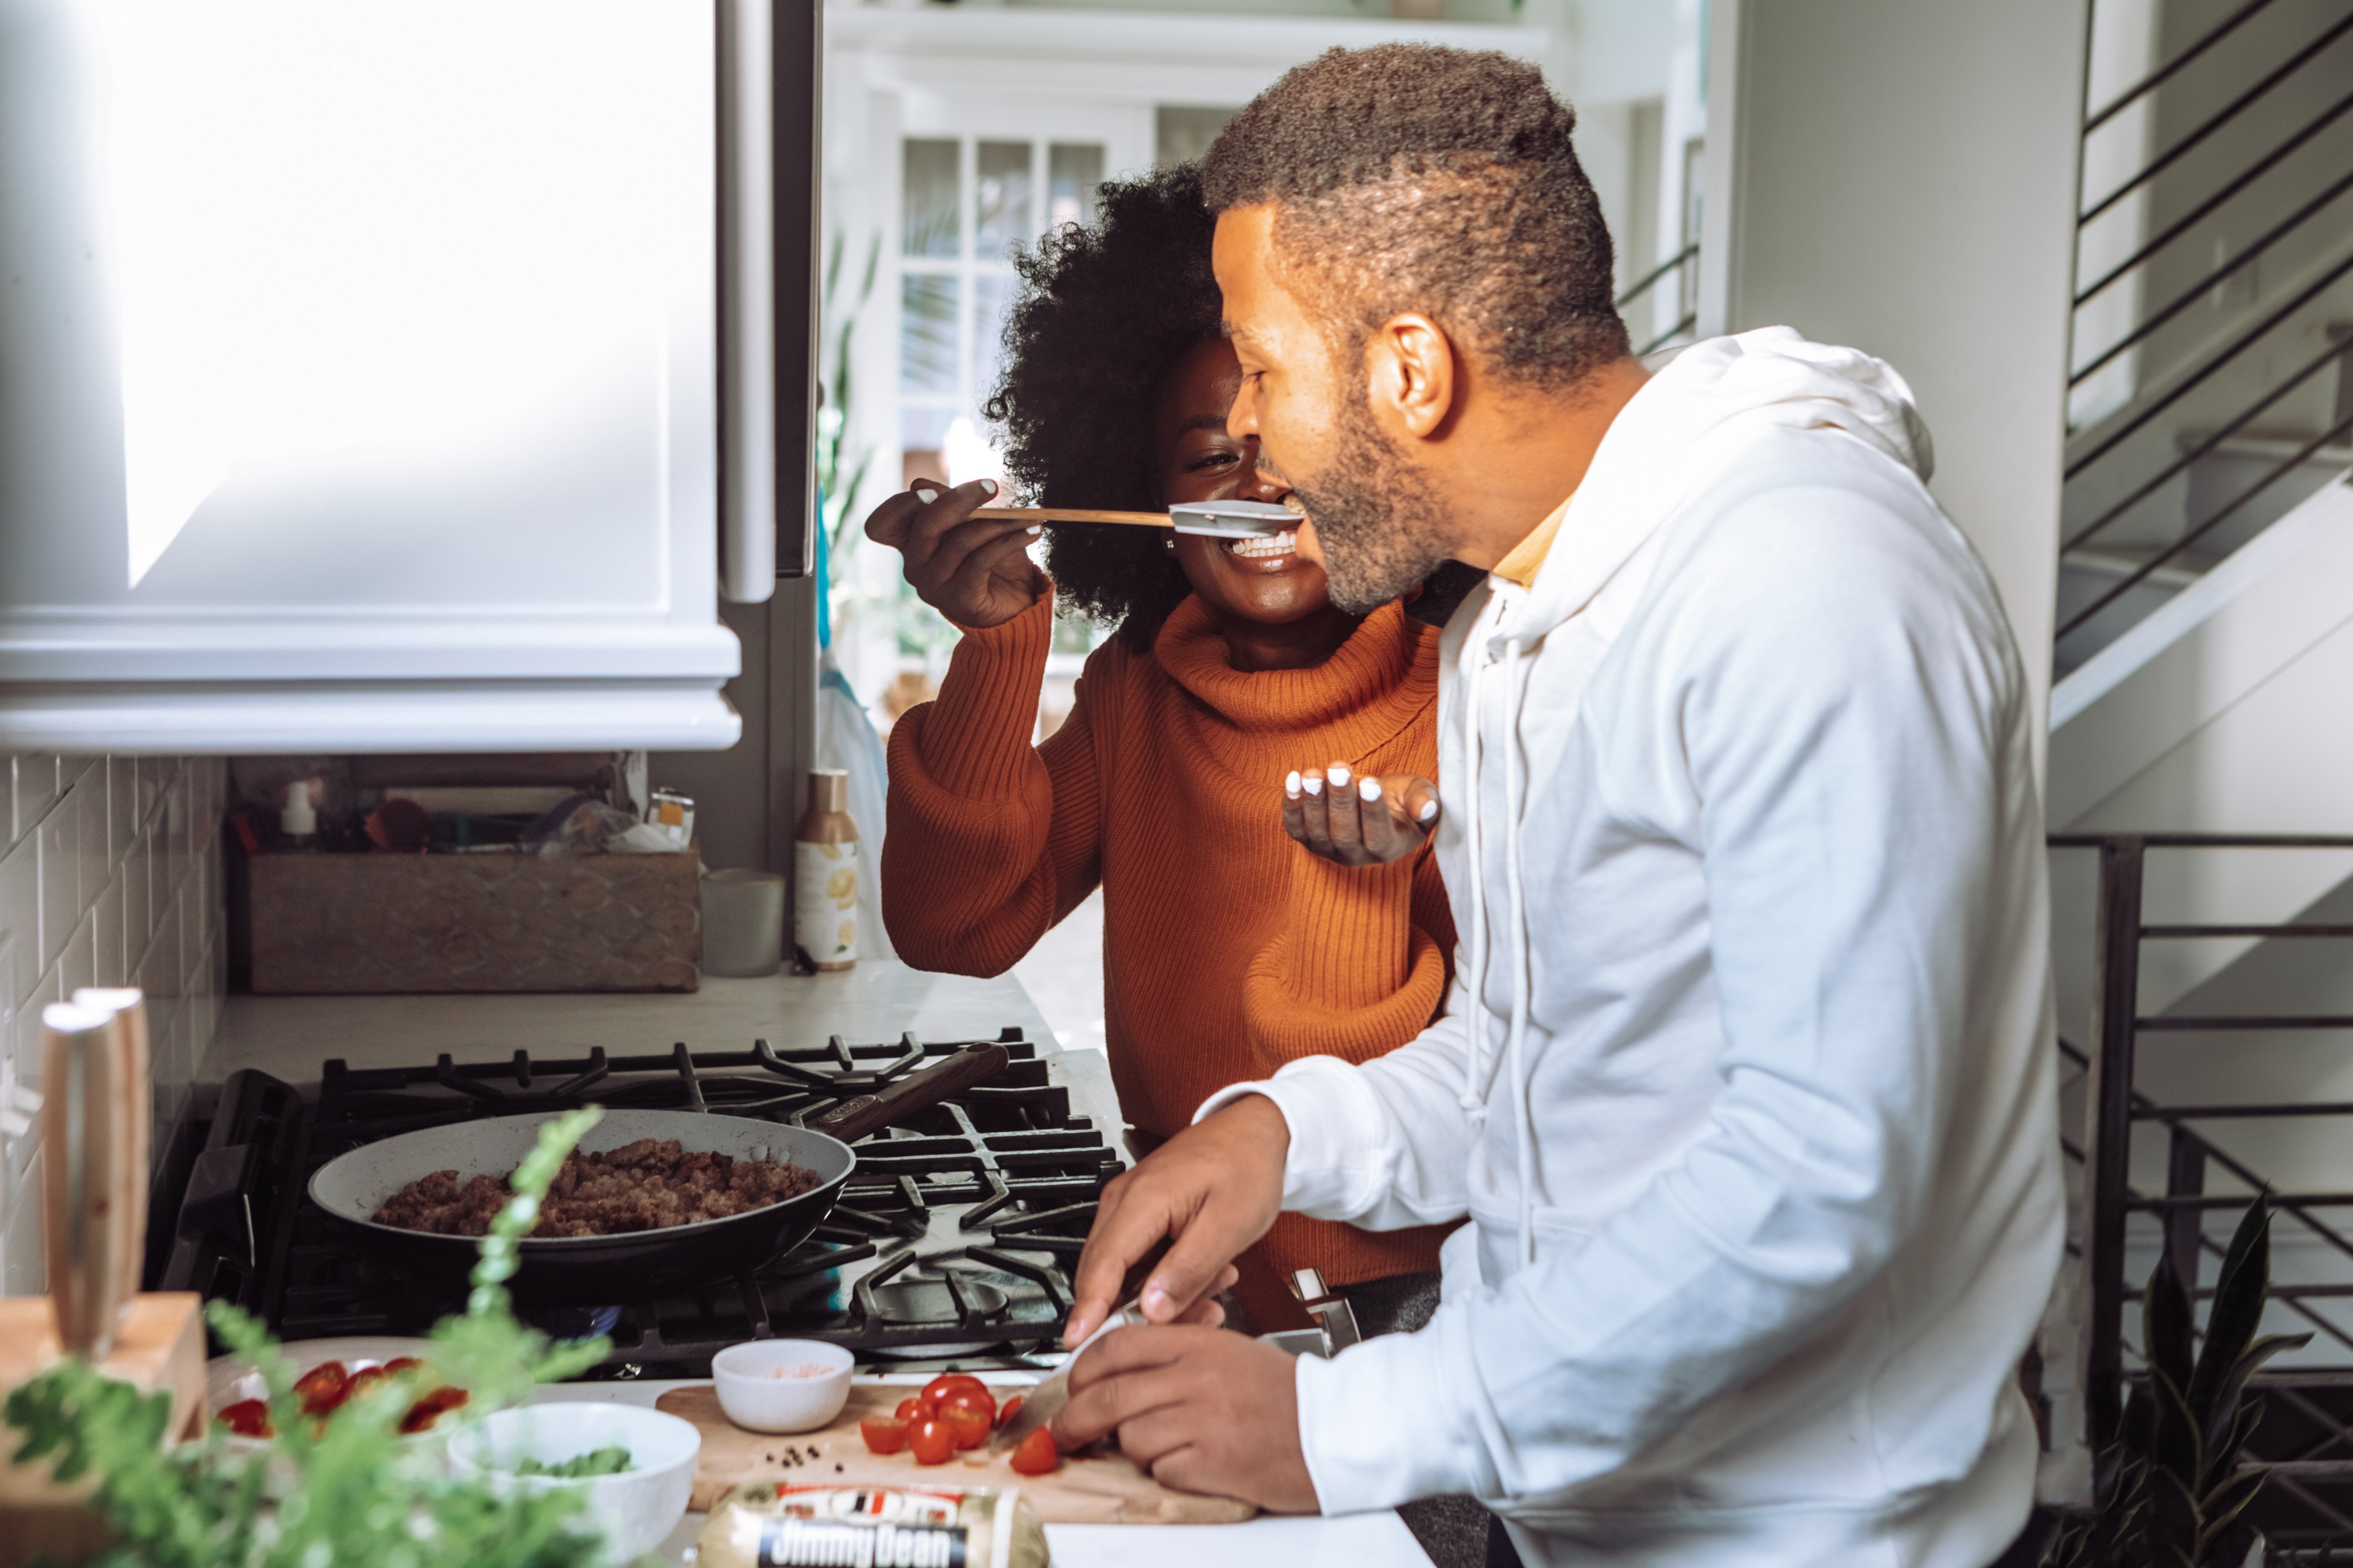 A man and woman are cooking in their kitchen, and the woman is giving him a bit of food to taste.